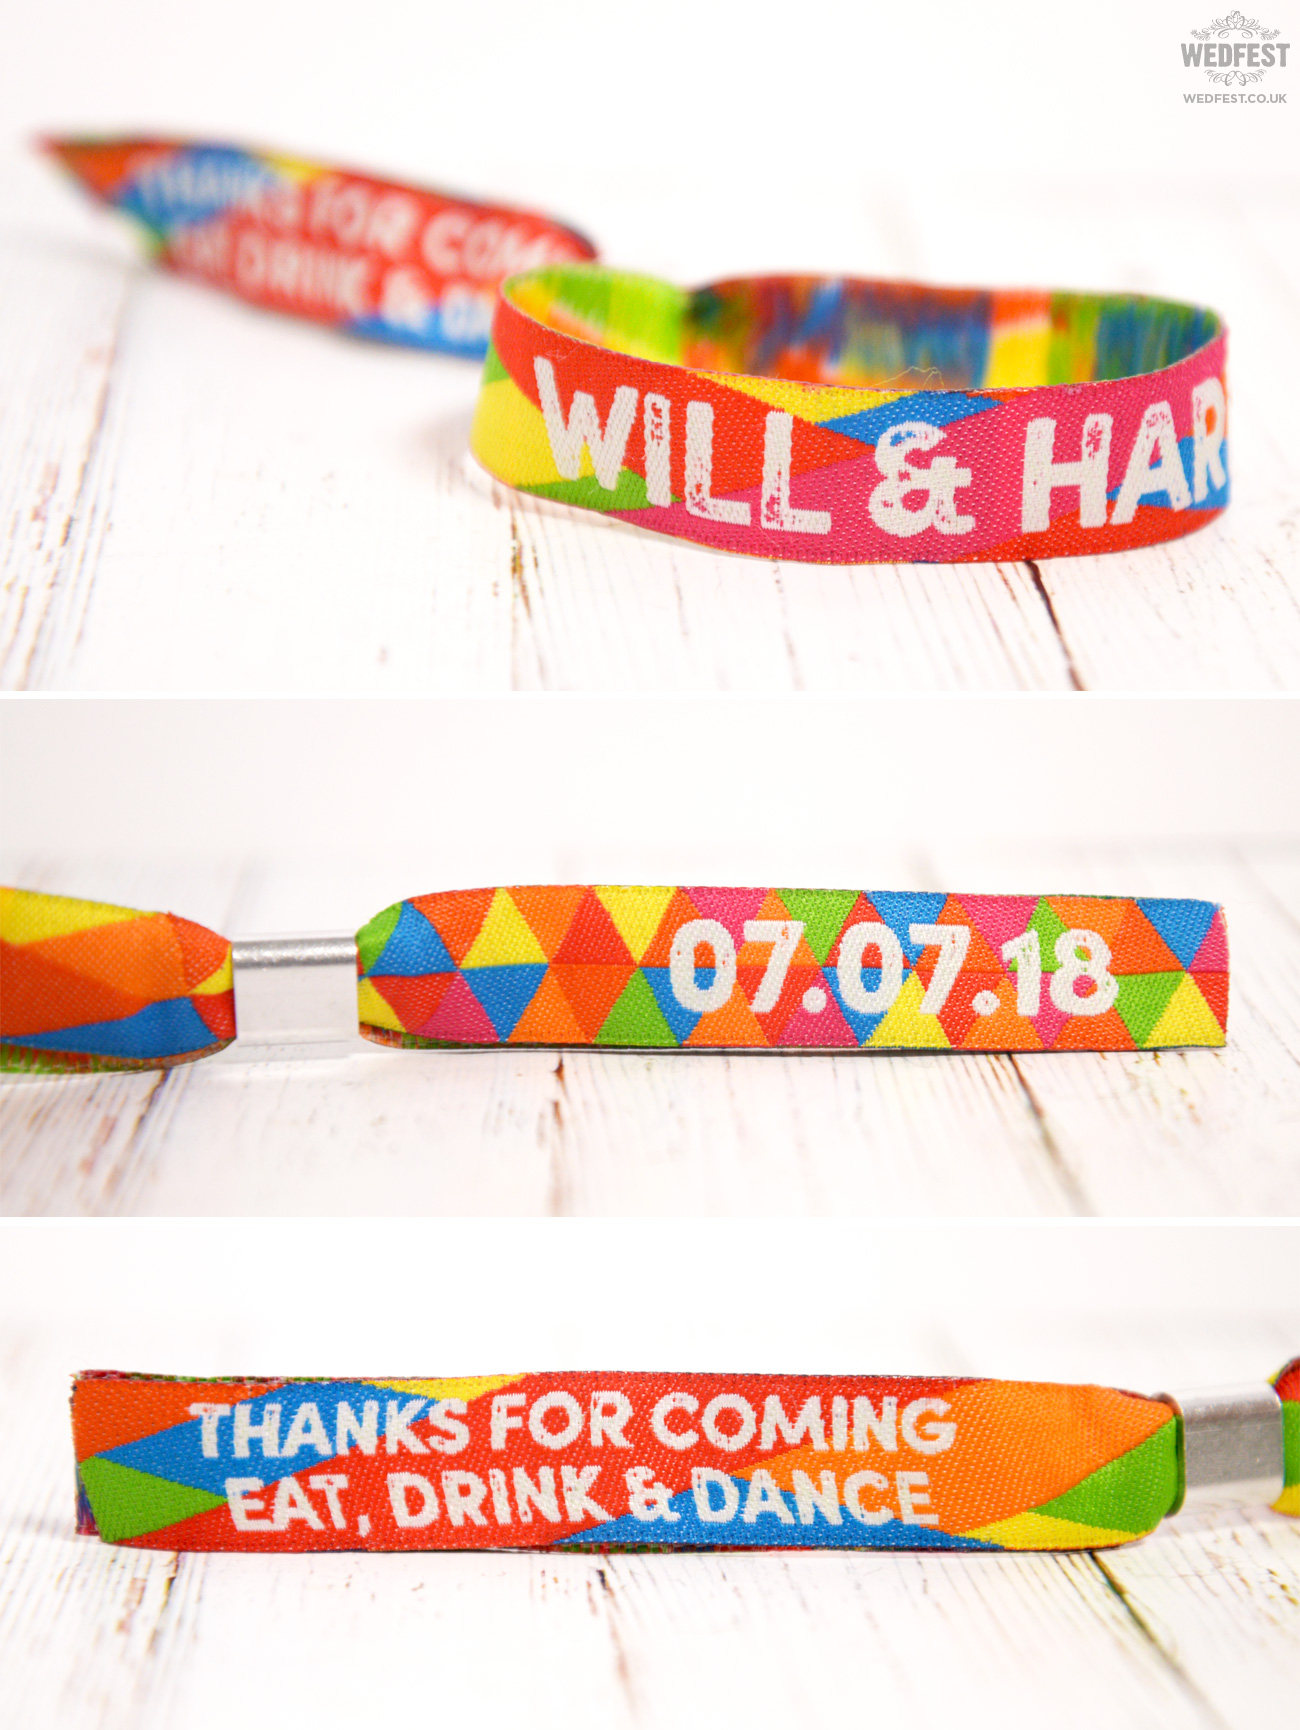 wedfest custom festival wedding wristband favours